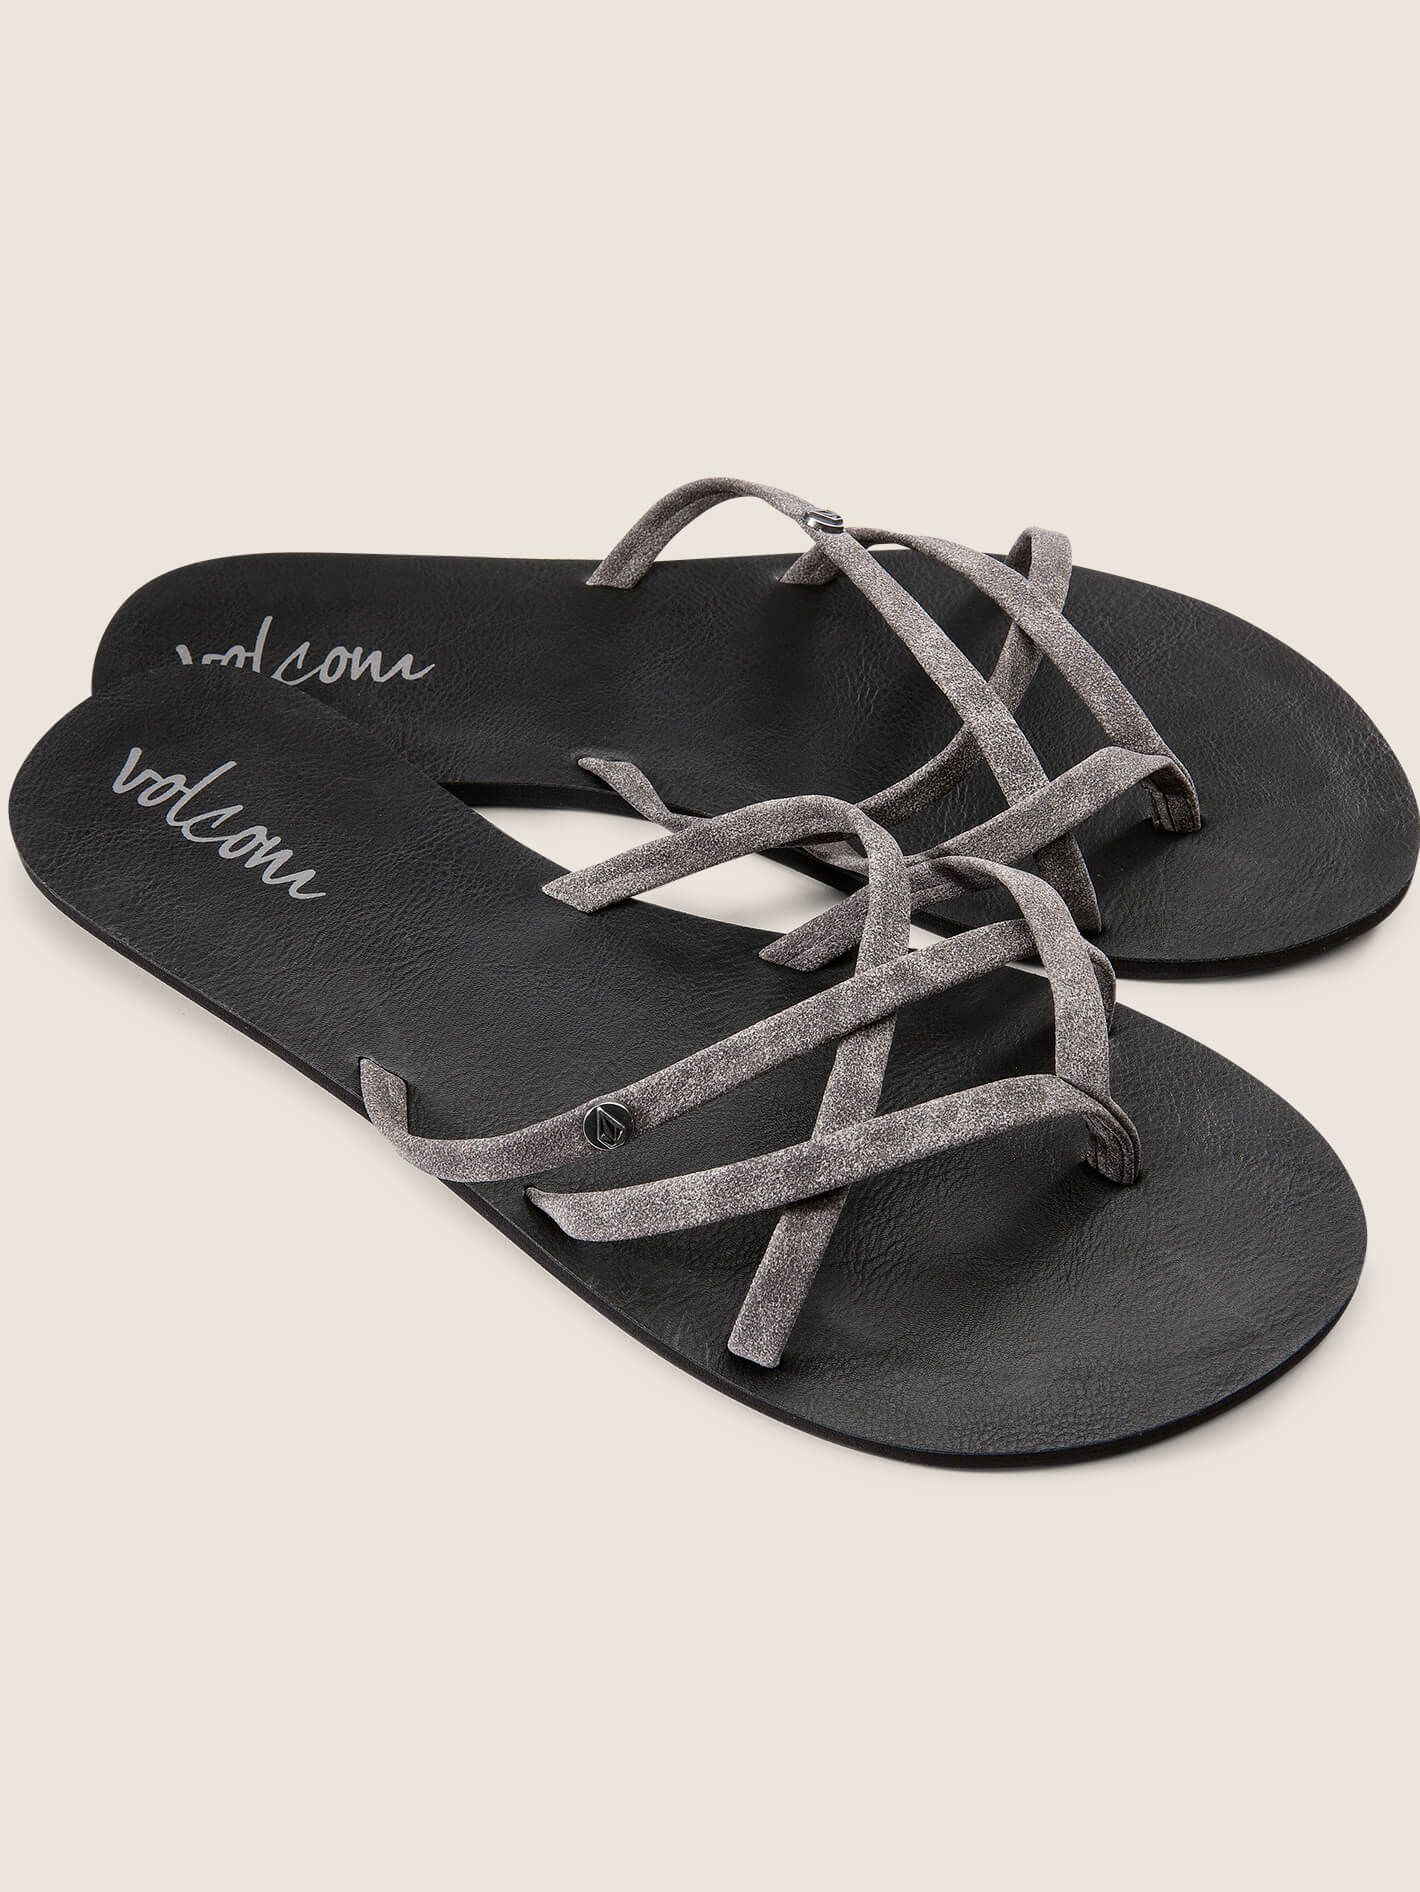 Volcom Ladies New School Sandals In Grey